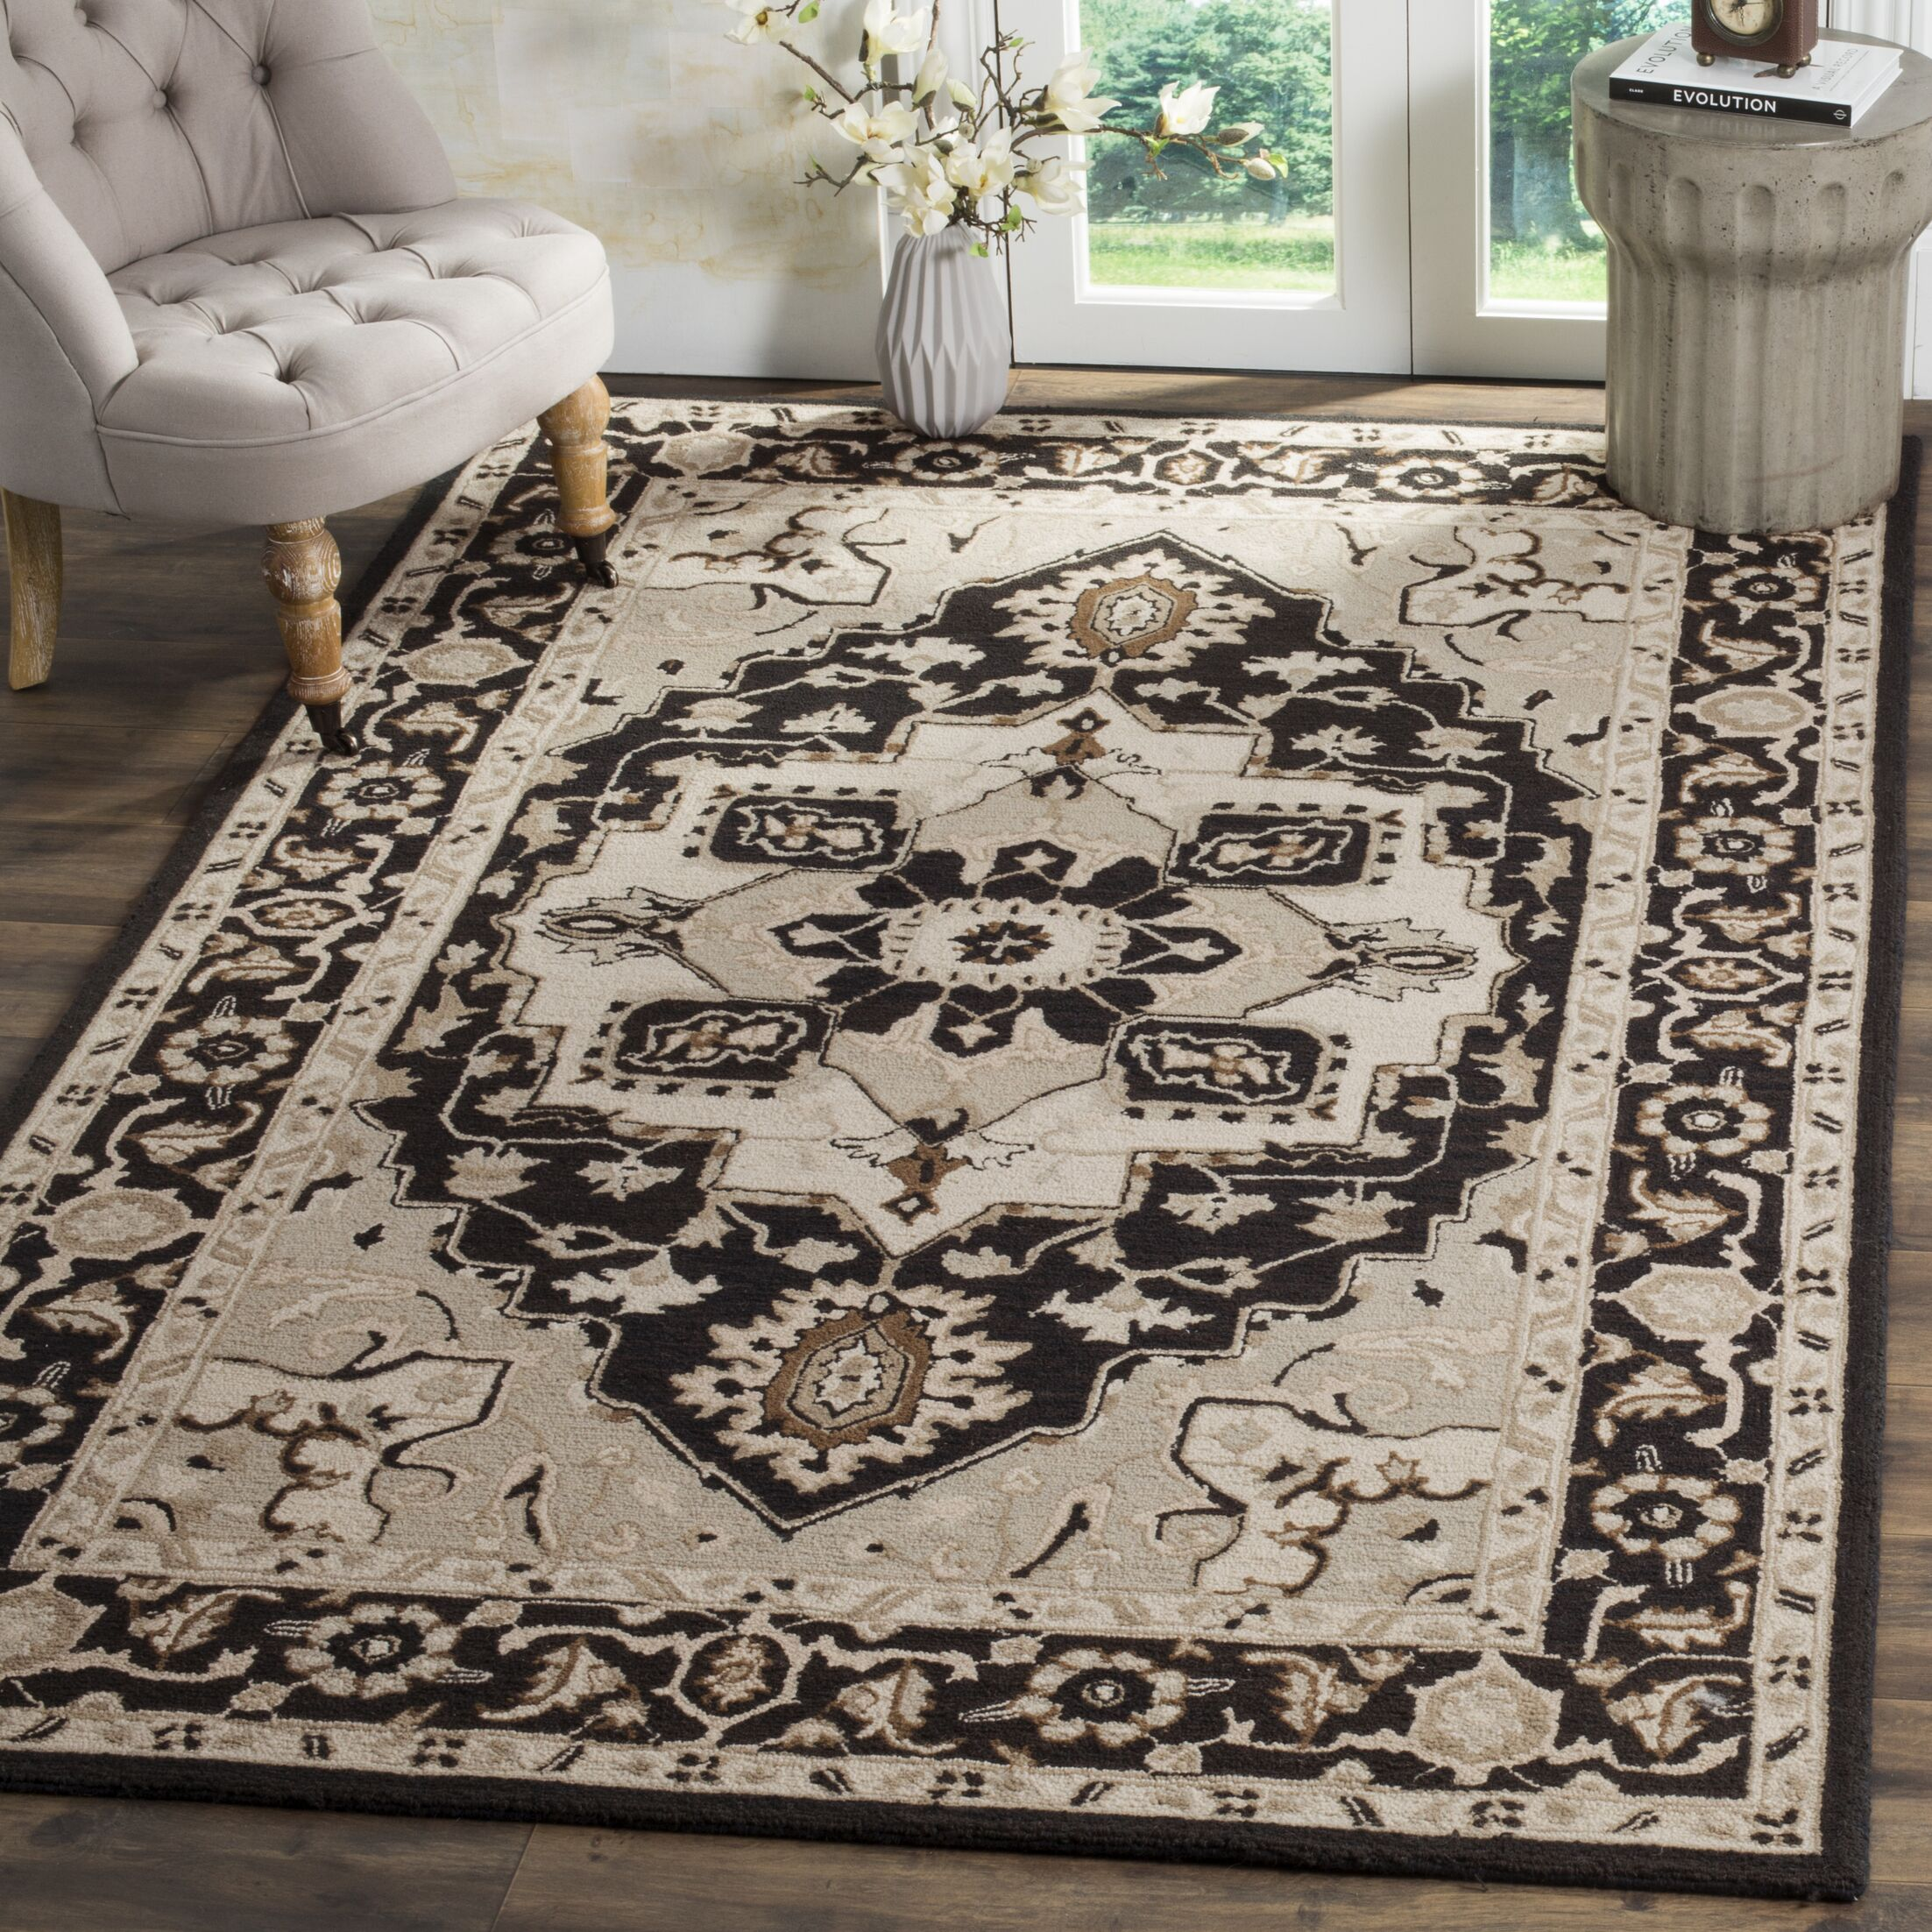 Amice Hand-Hooked Black/Natural Area Rug Rug Size: Rectangle 2' 9